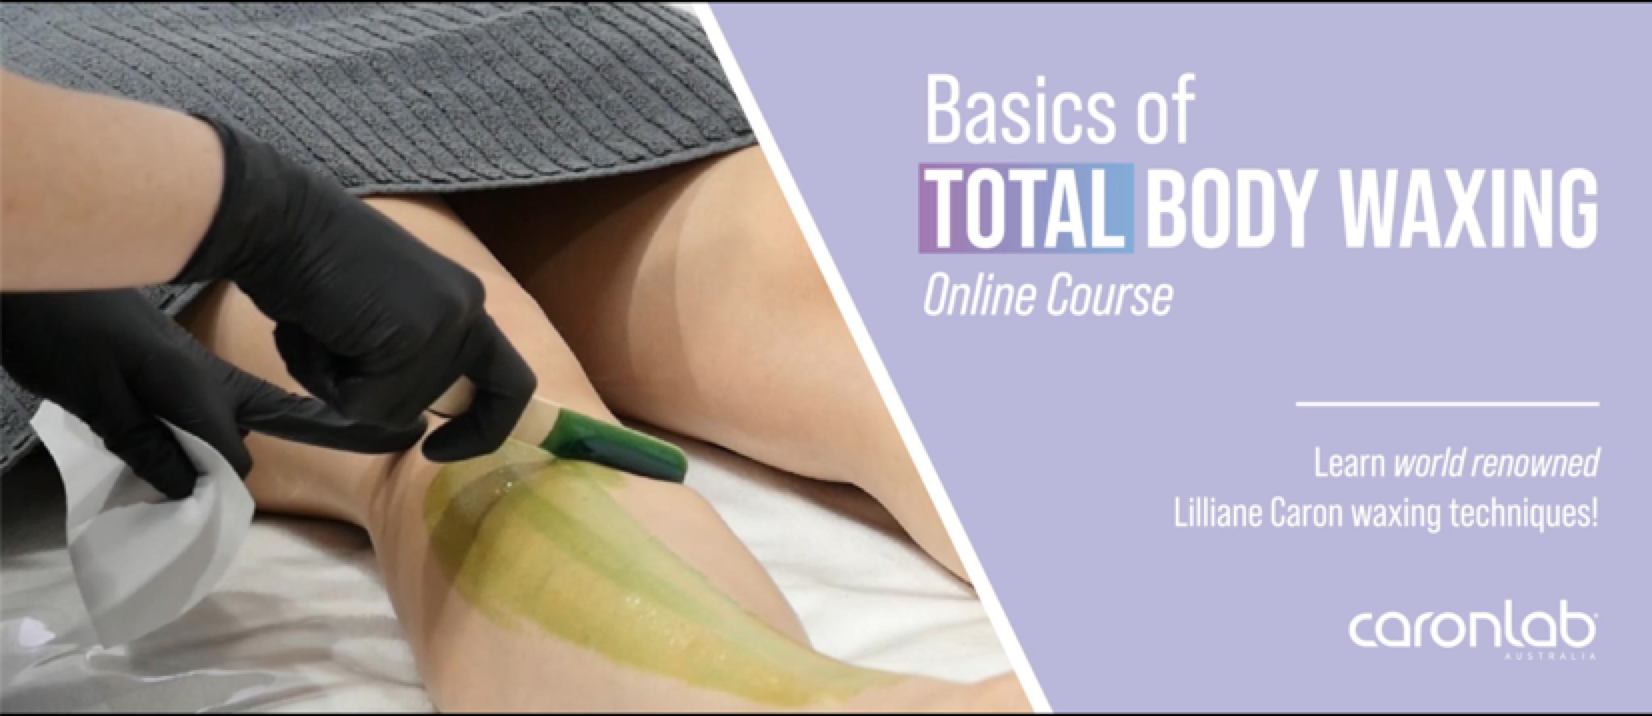 Basics of Body Waxing - Online Course